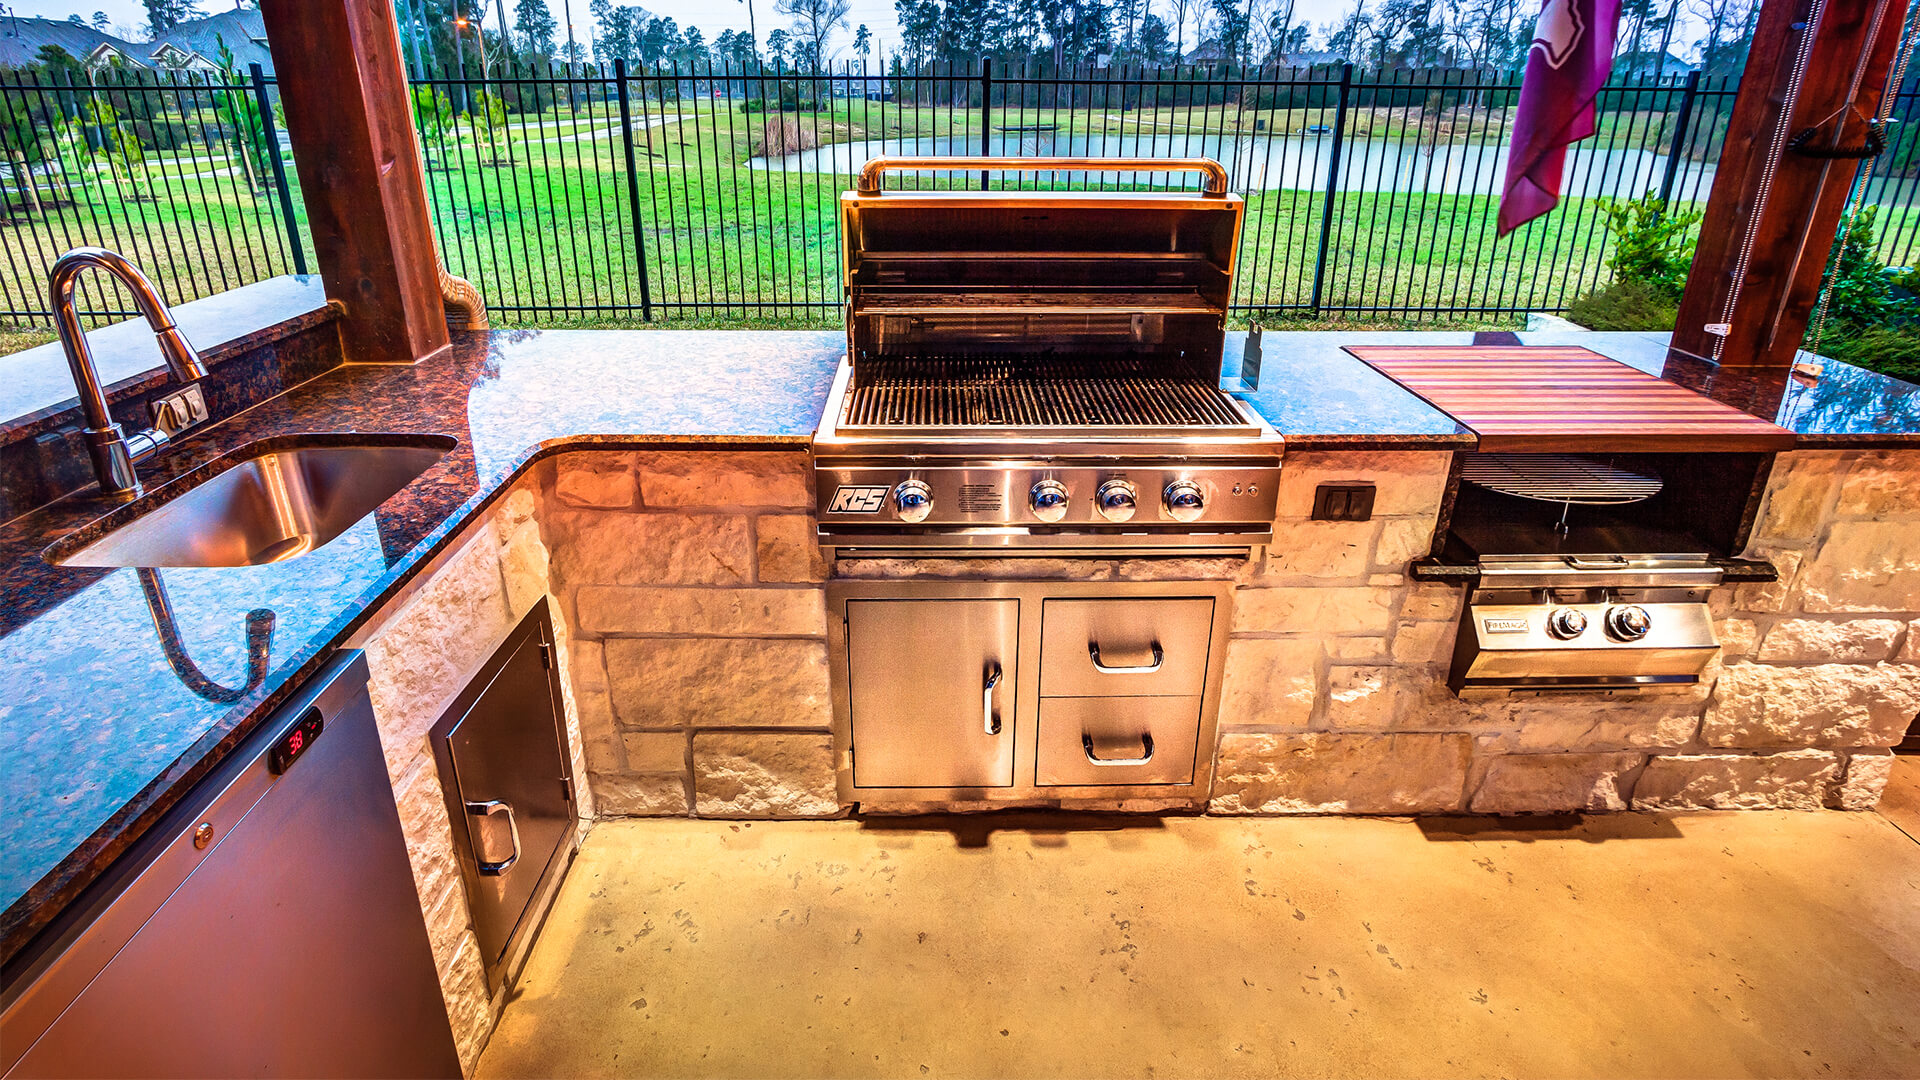 Houston Custom Outdoor Kitchen with RCS Grill, Double Side burner, Refrigerator and Sink